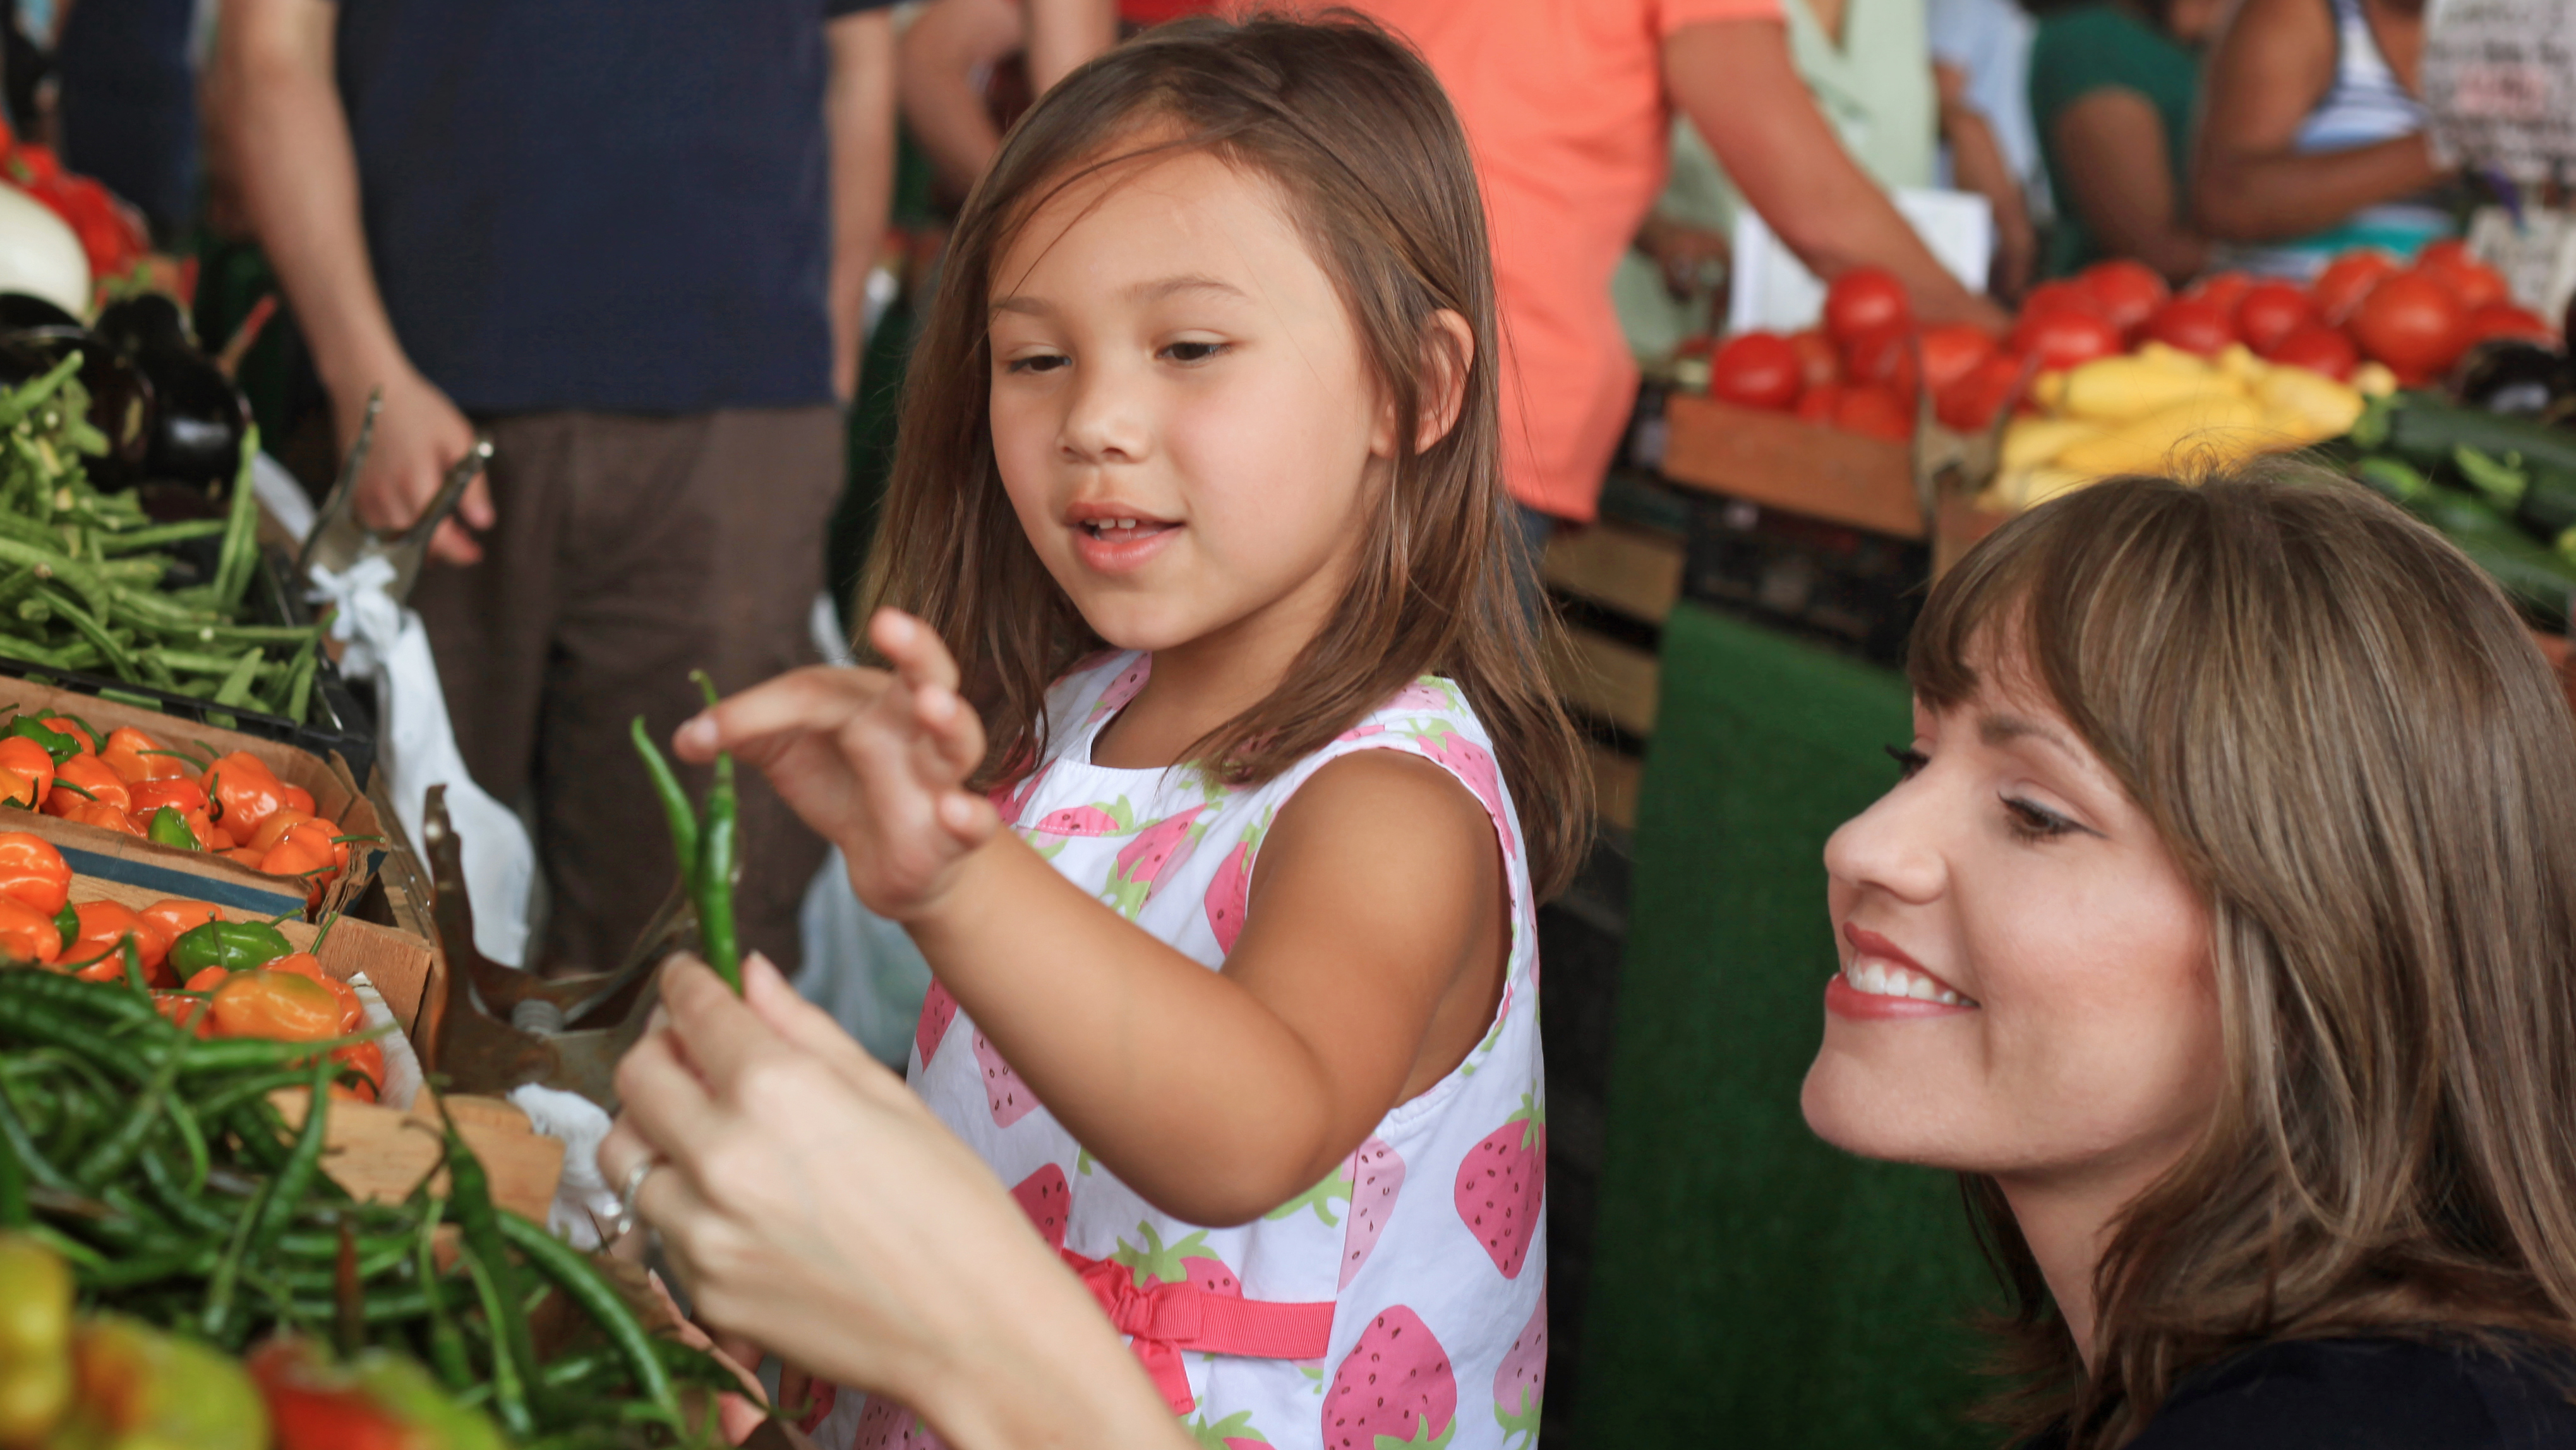 Woman and girl looking at beans at a farmers' market.